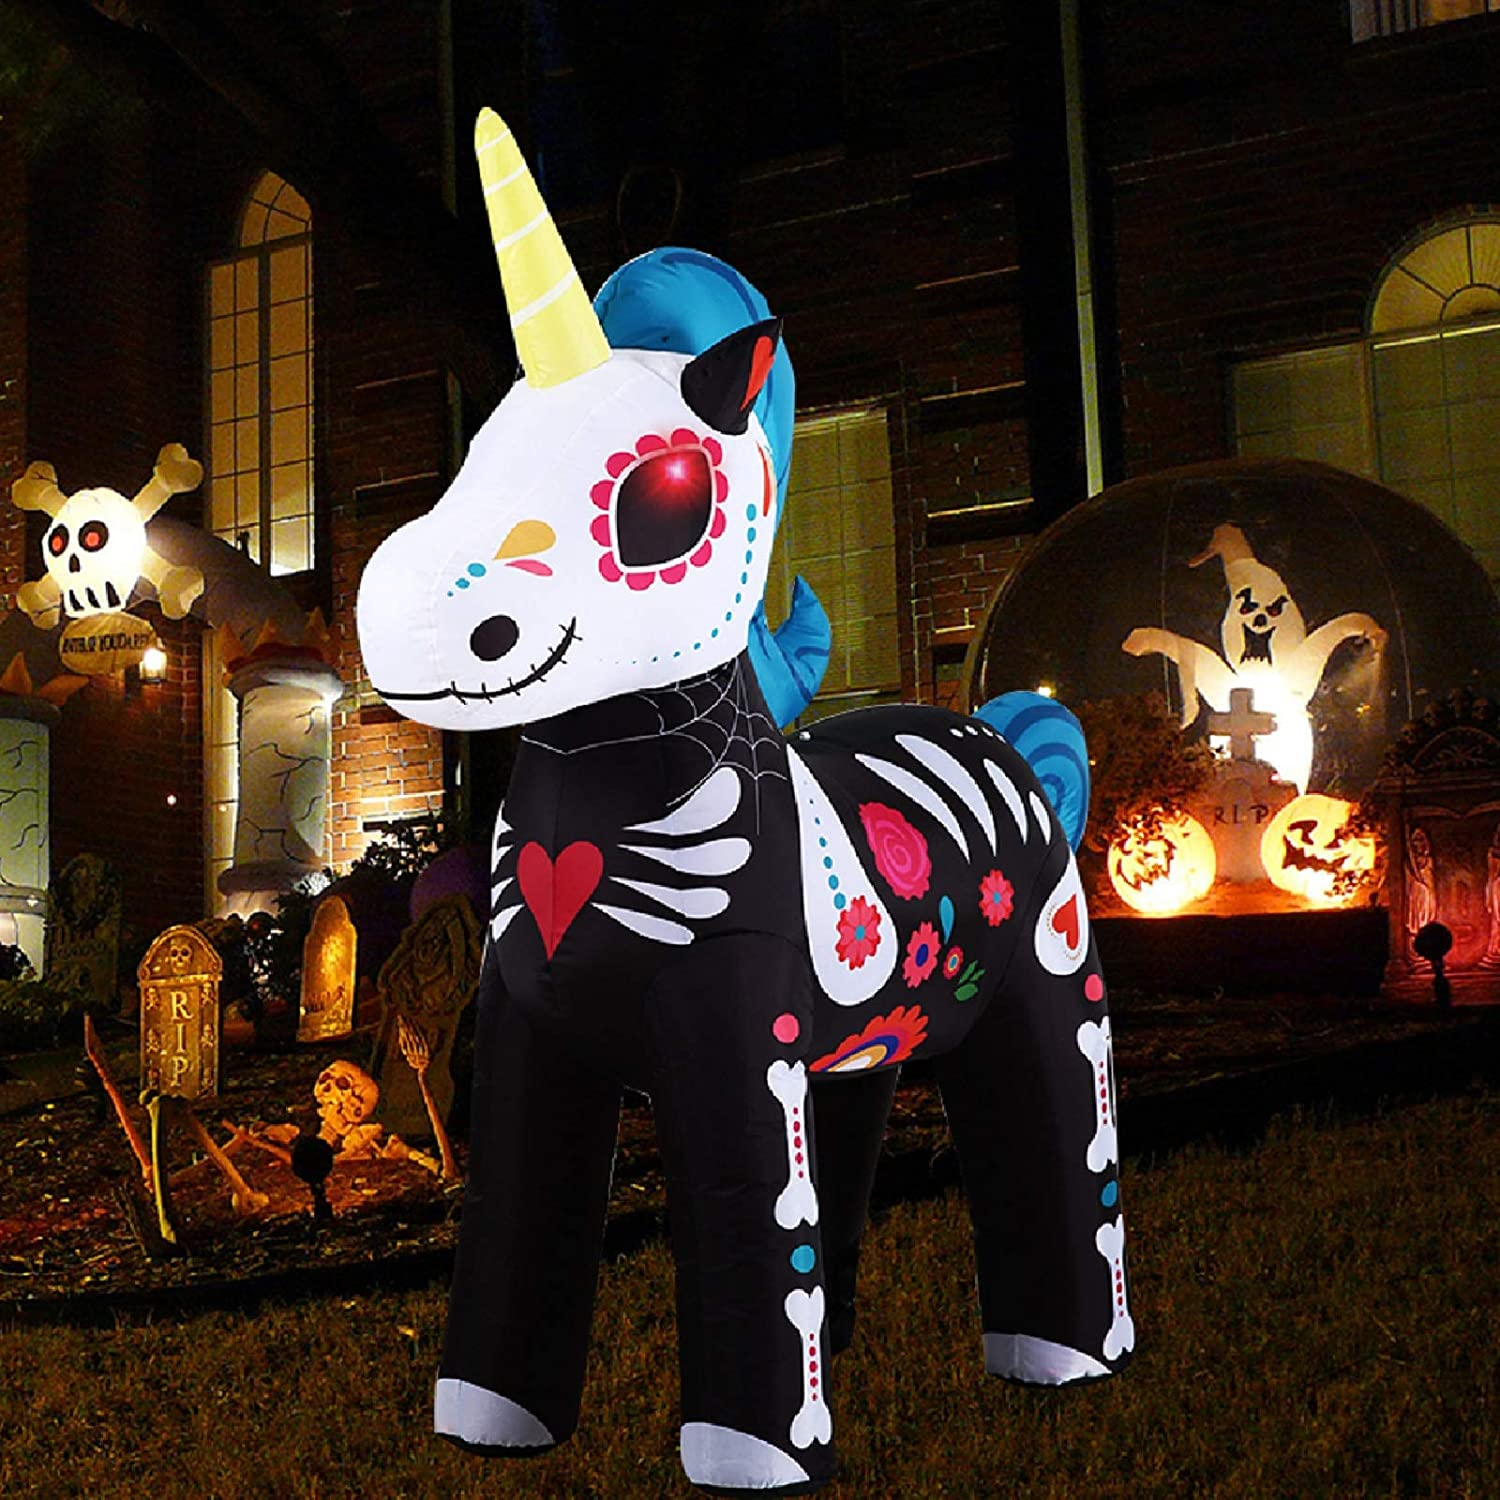 SEETOYS Halloween Inflatable Skeleton Unicorn,for Halloween Party Indoor, Outdoor, Yard, Garden, Lawn Decoration 5.4FT